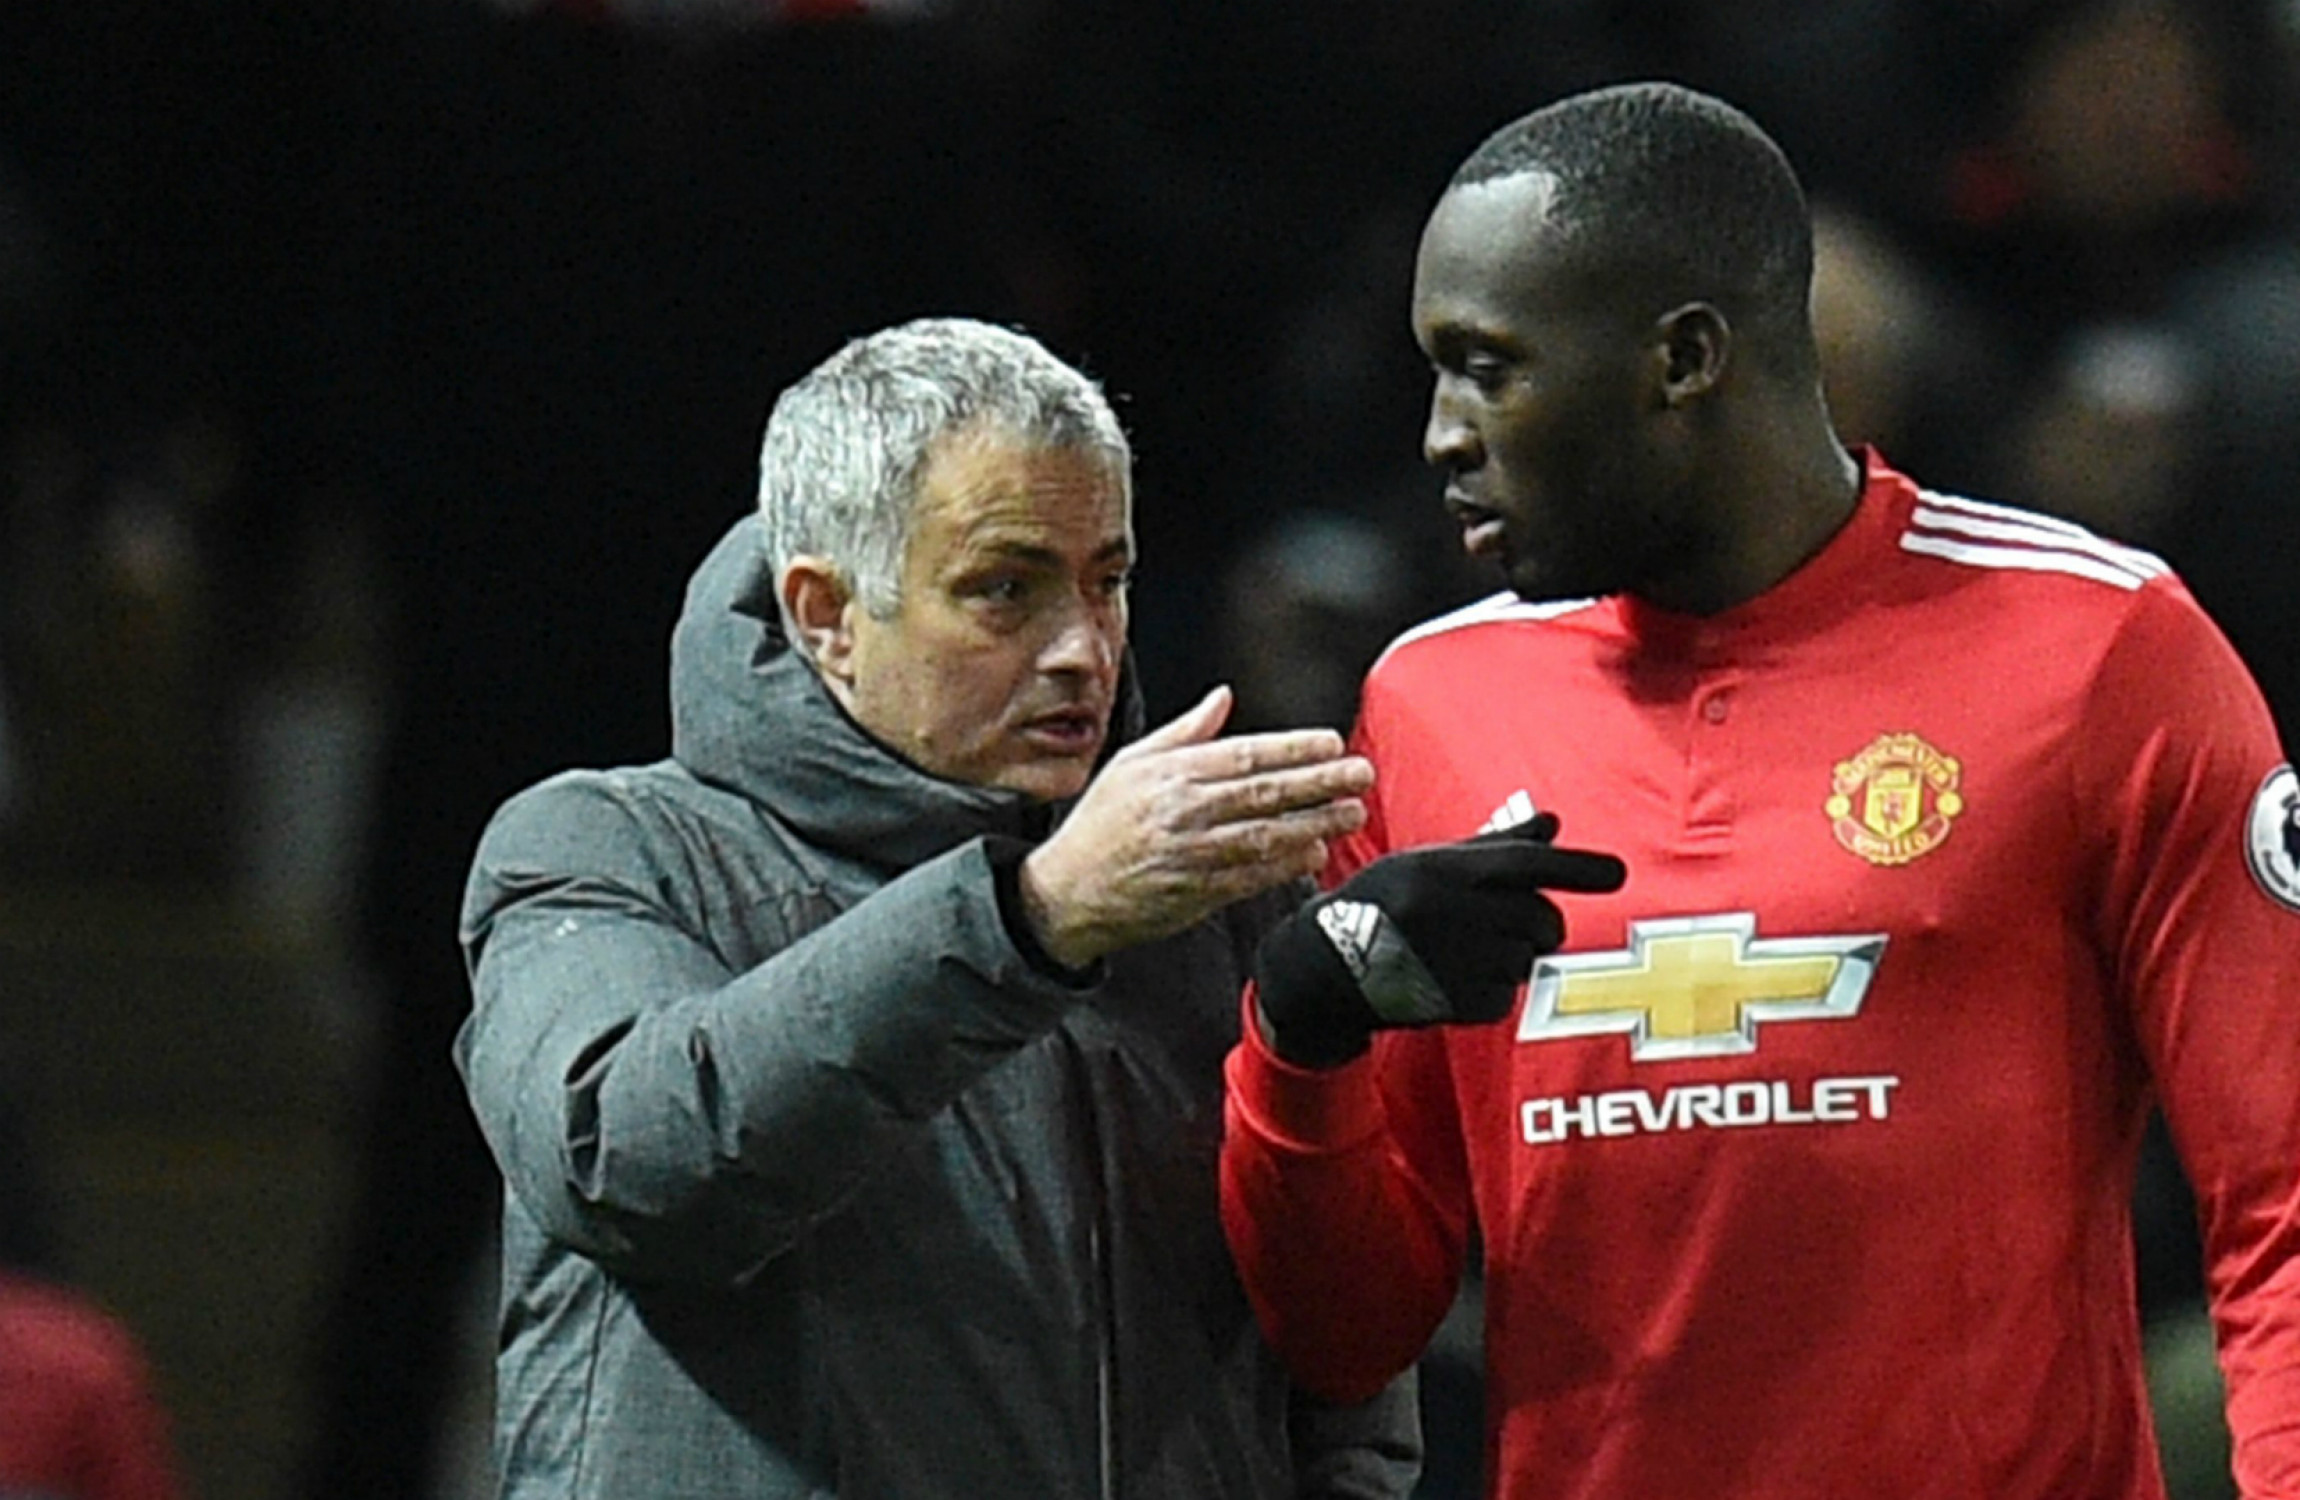 Romelu Lukaku in conversation with Jose Mourinho